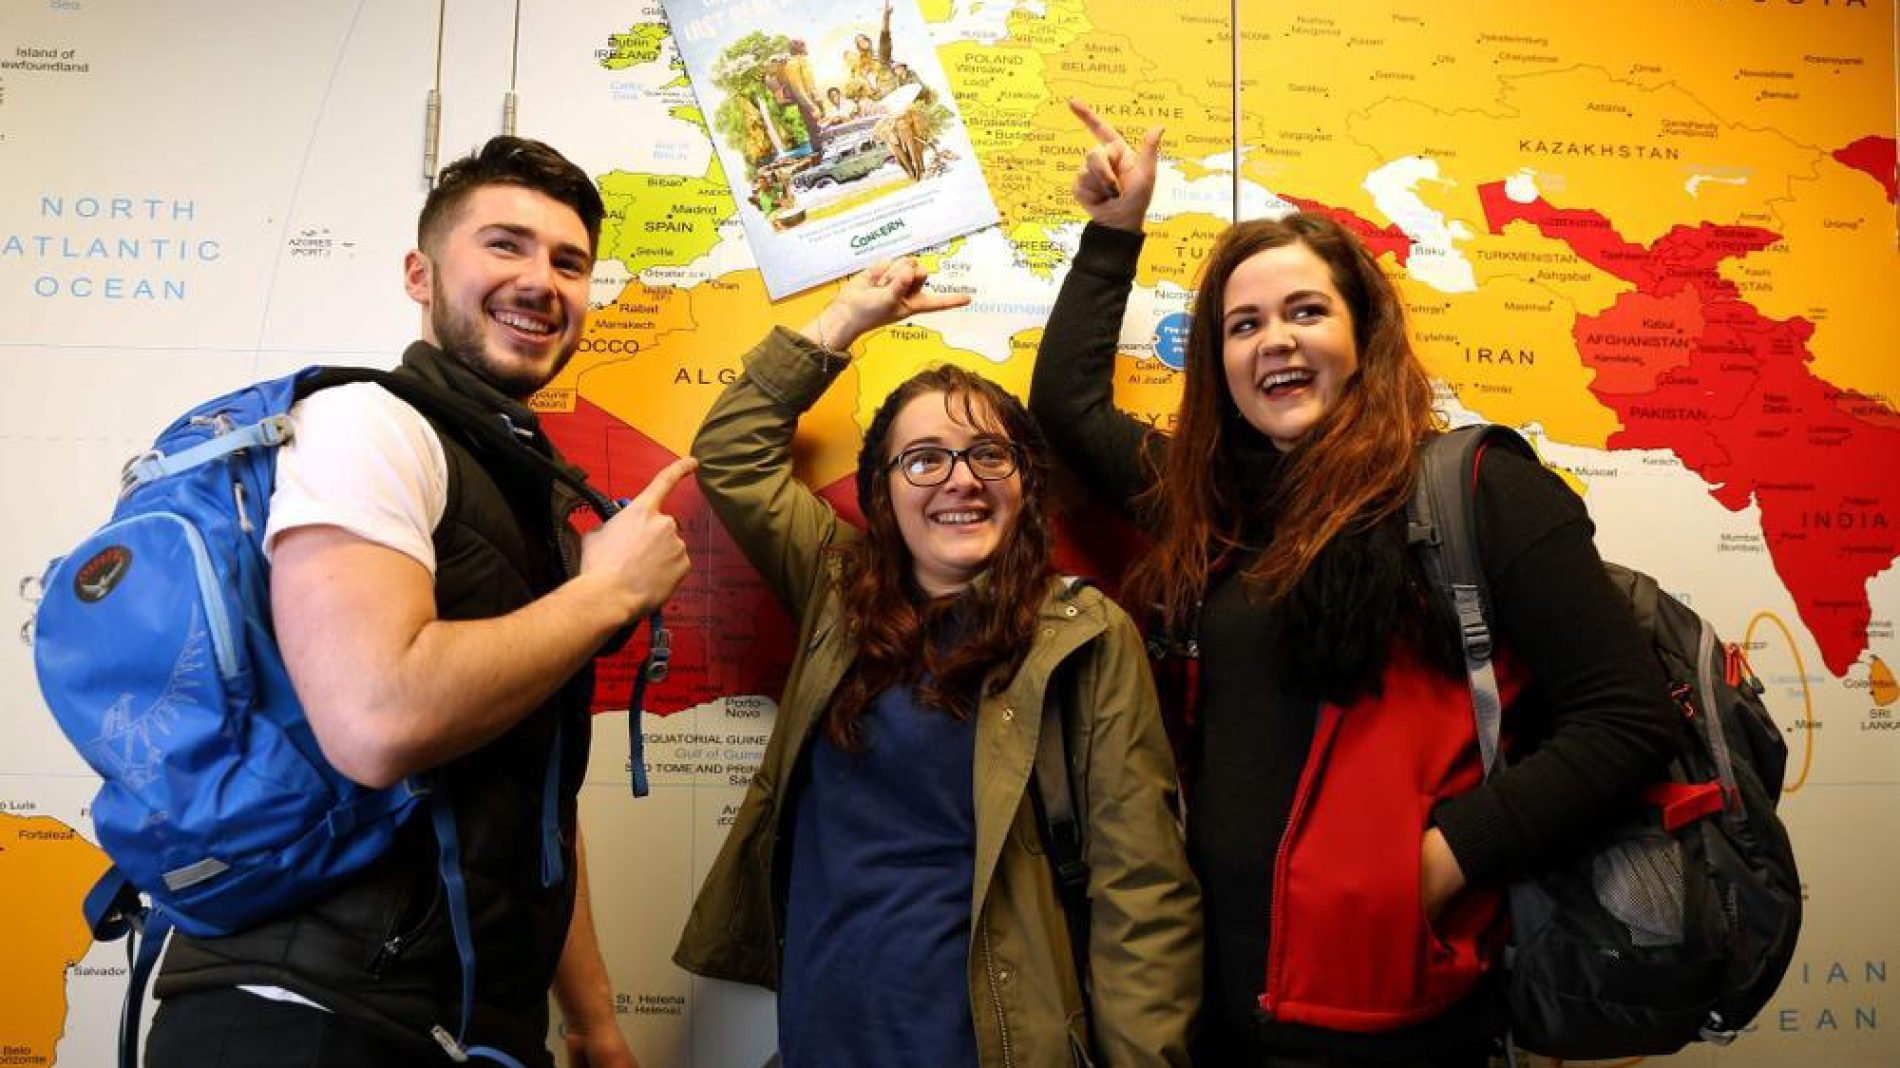 group of young people in front of a map